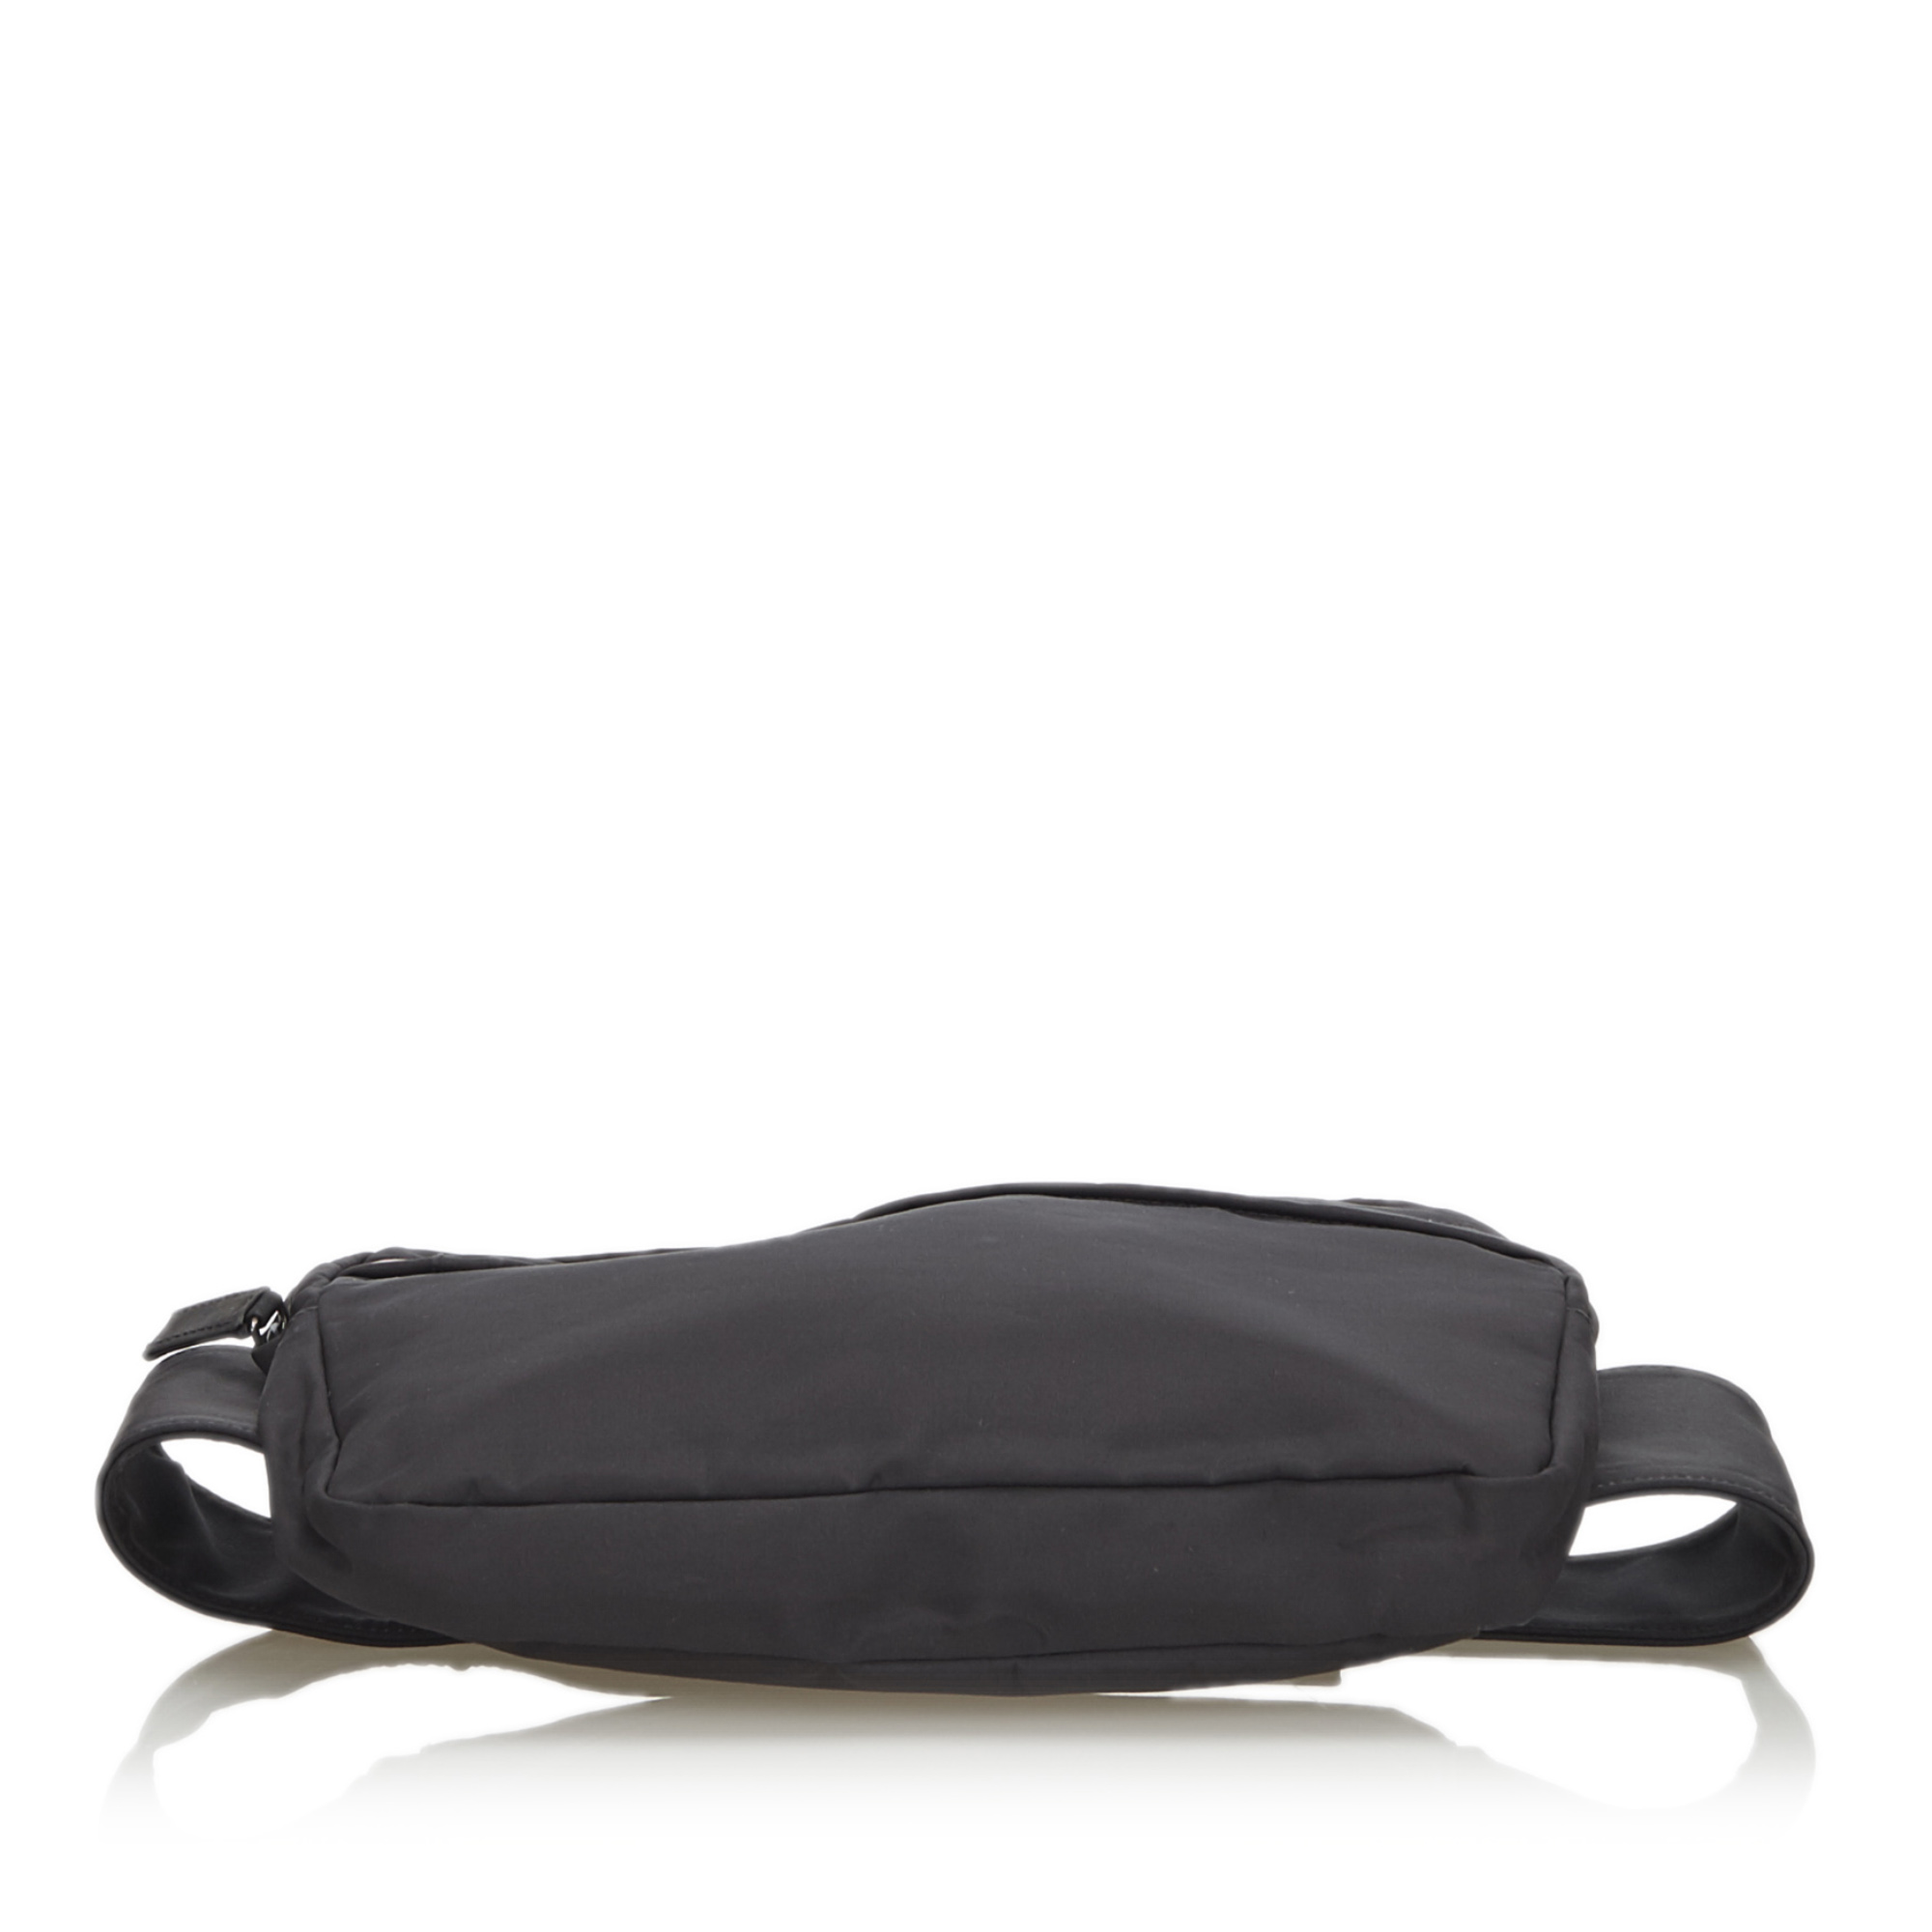 Marc Jacobs Sport Belt Bag Nylon Black i svart | fashionette